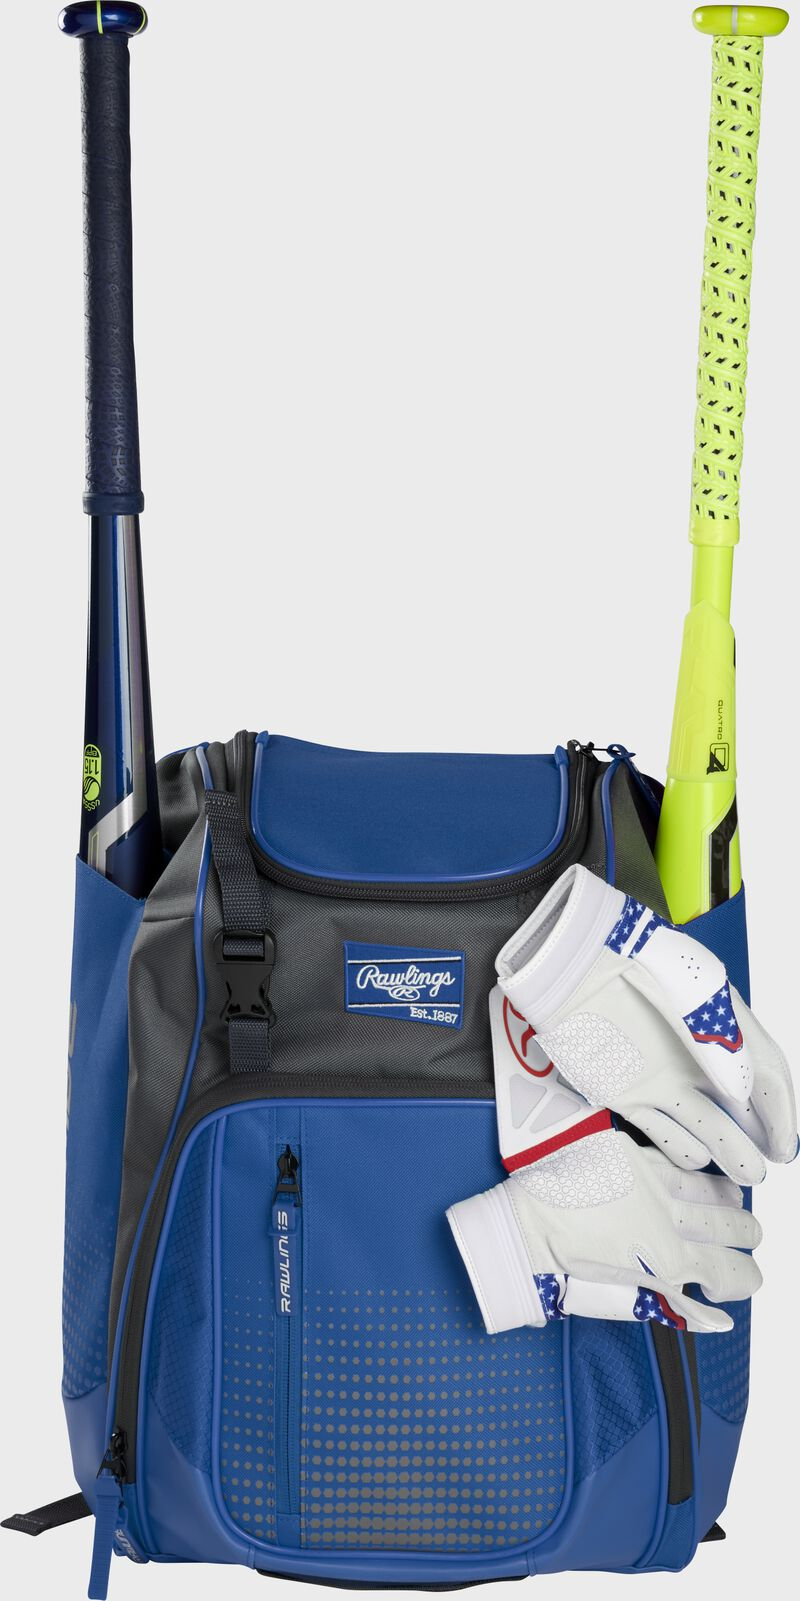 A royal Franchise backpack with two bats in the sides and batting gloves on the front Velcro strap - SKU: FRANBP-R